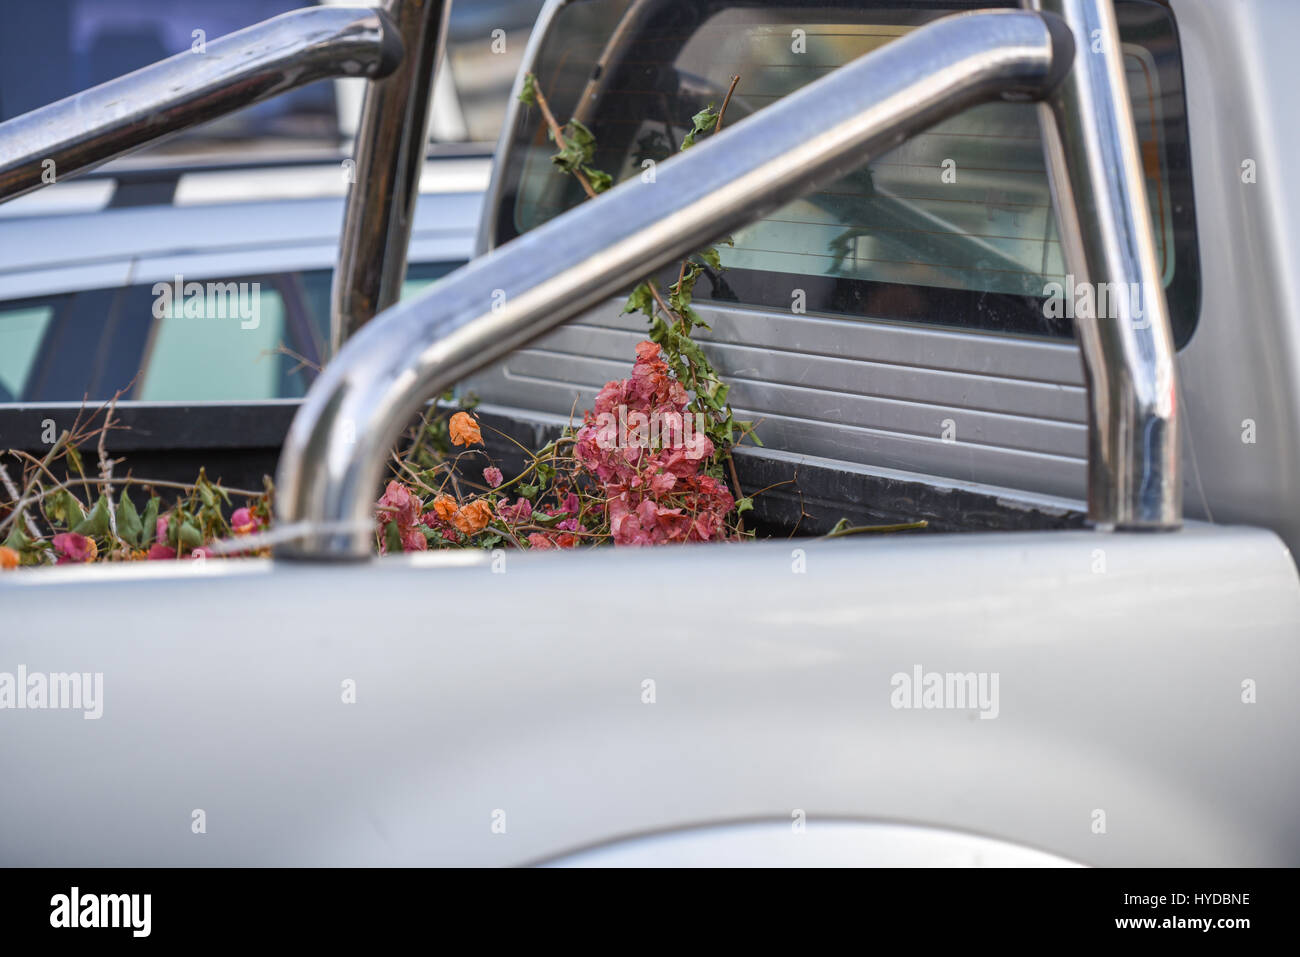 Trunk of a jeep with flowers in it - Stock Image